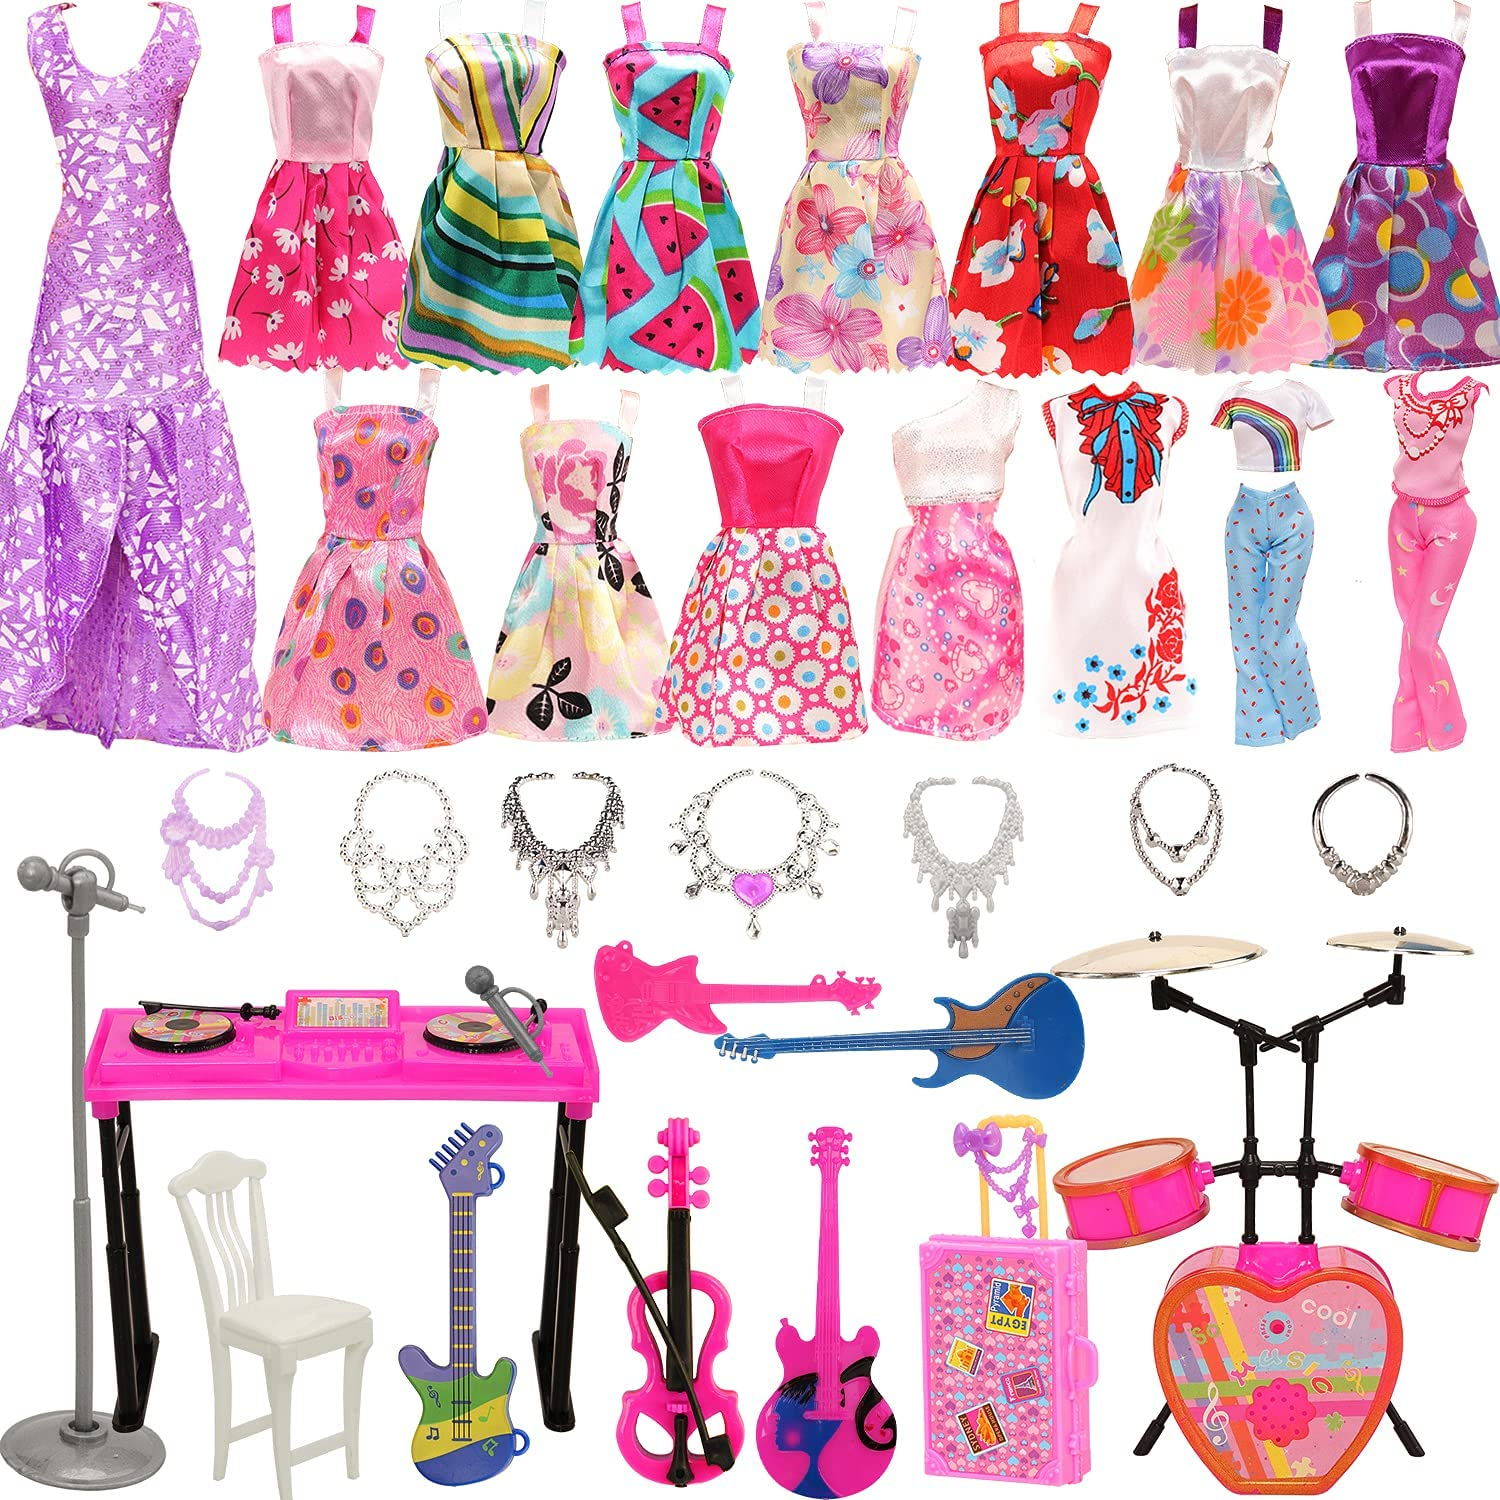 Miunana Lot 35 pcs Random Year-end annual account Entertainment Clothes Musical and Set Reservation